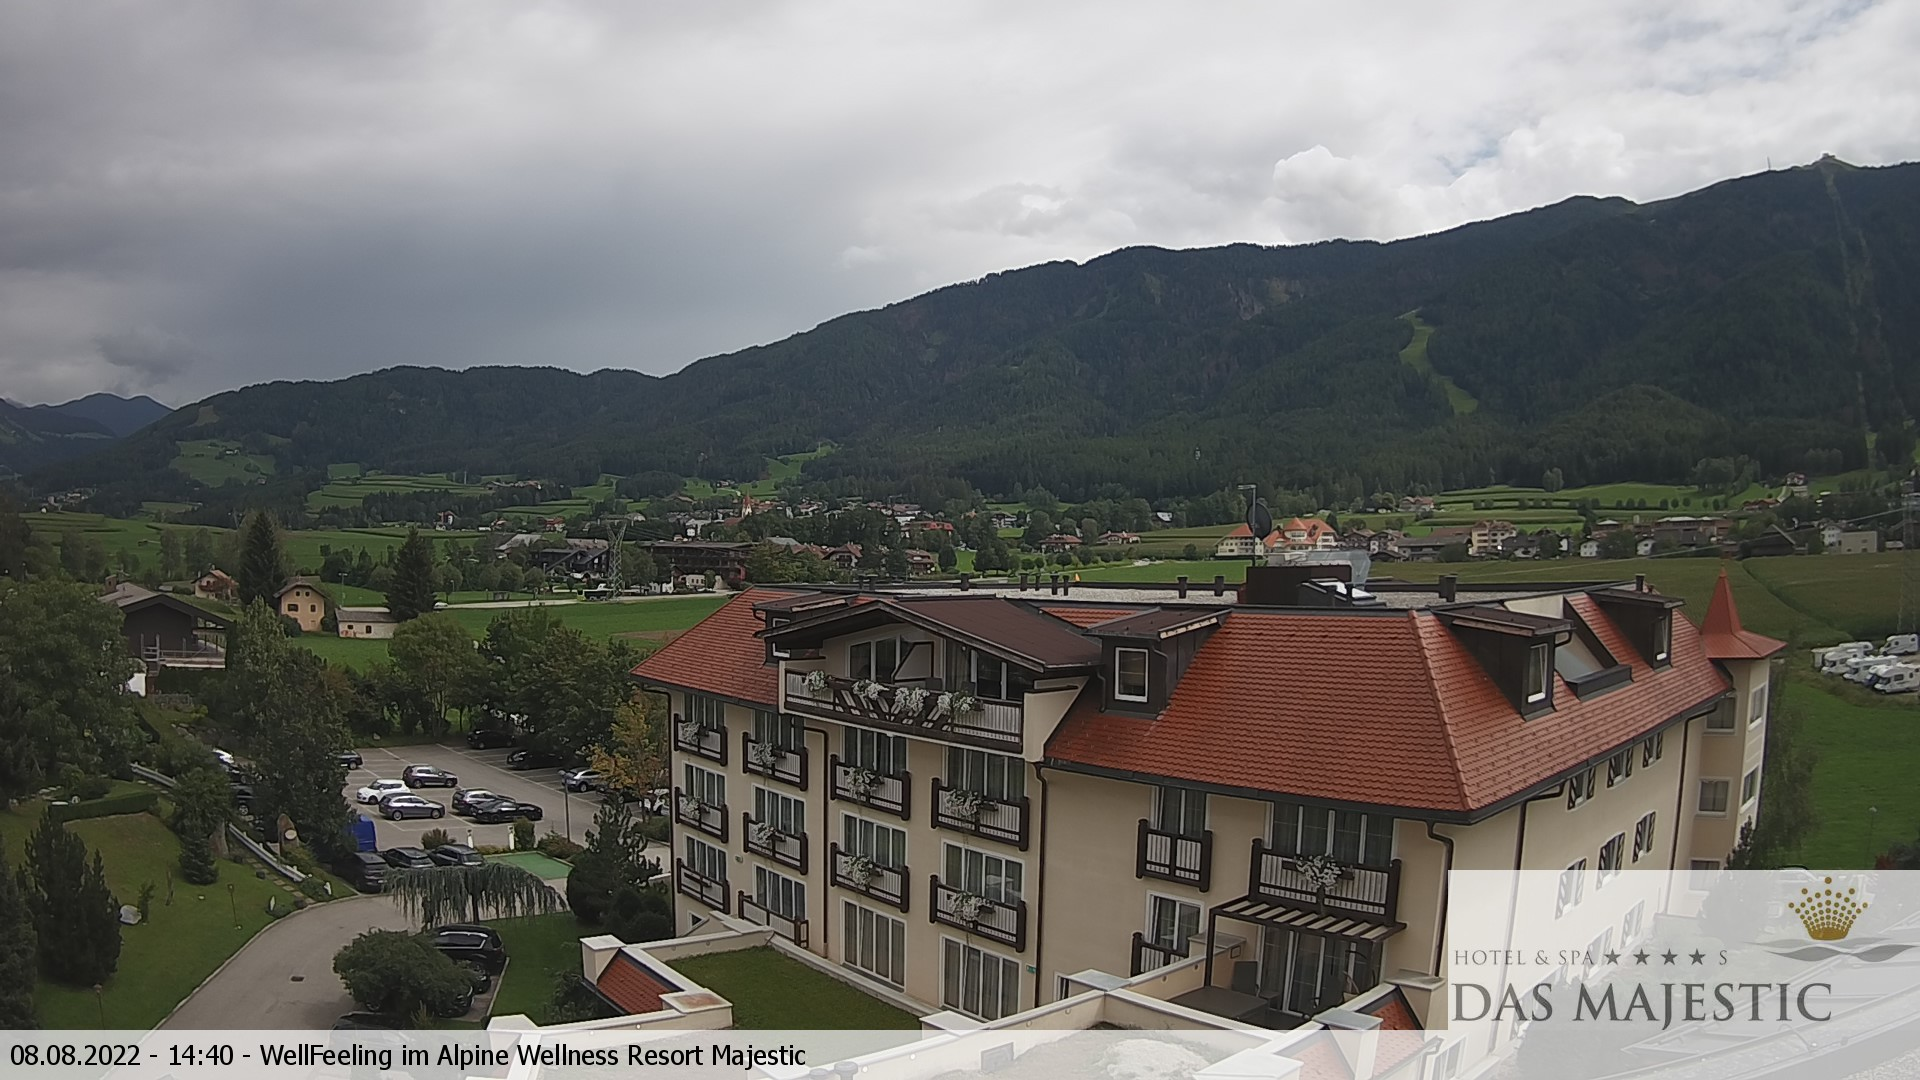 Webcam Webcam Hotel Majestic a Riscone